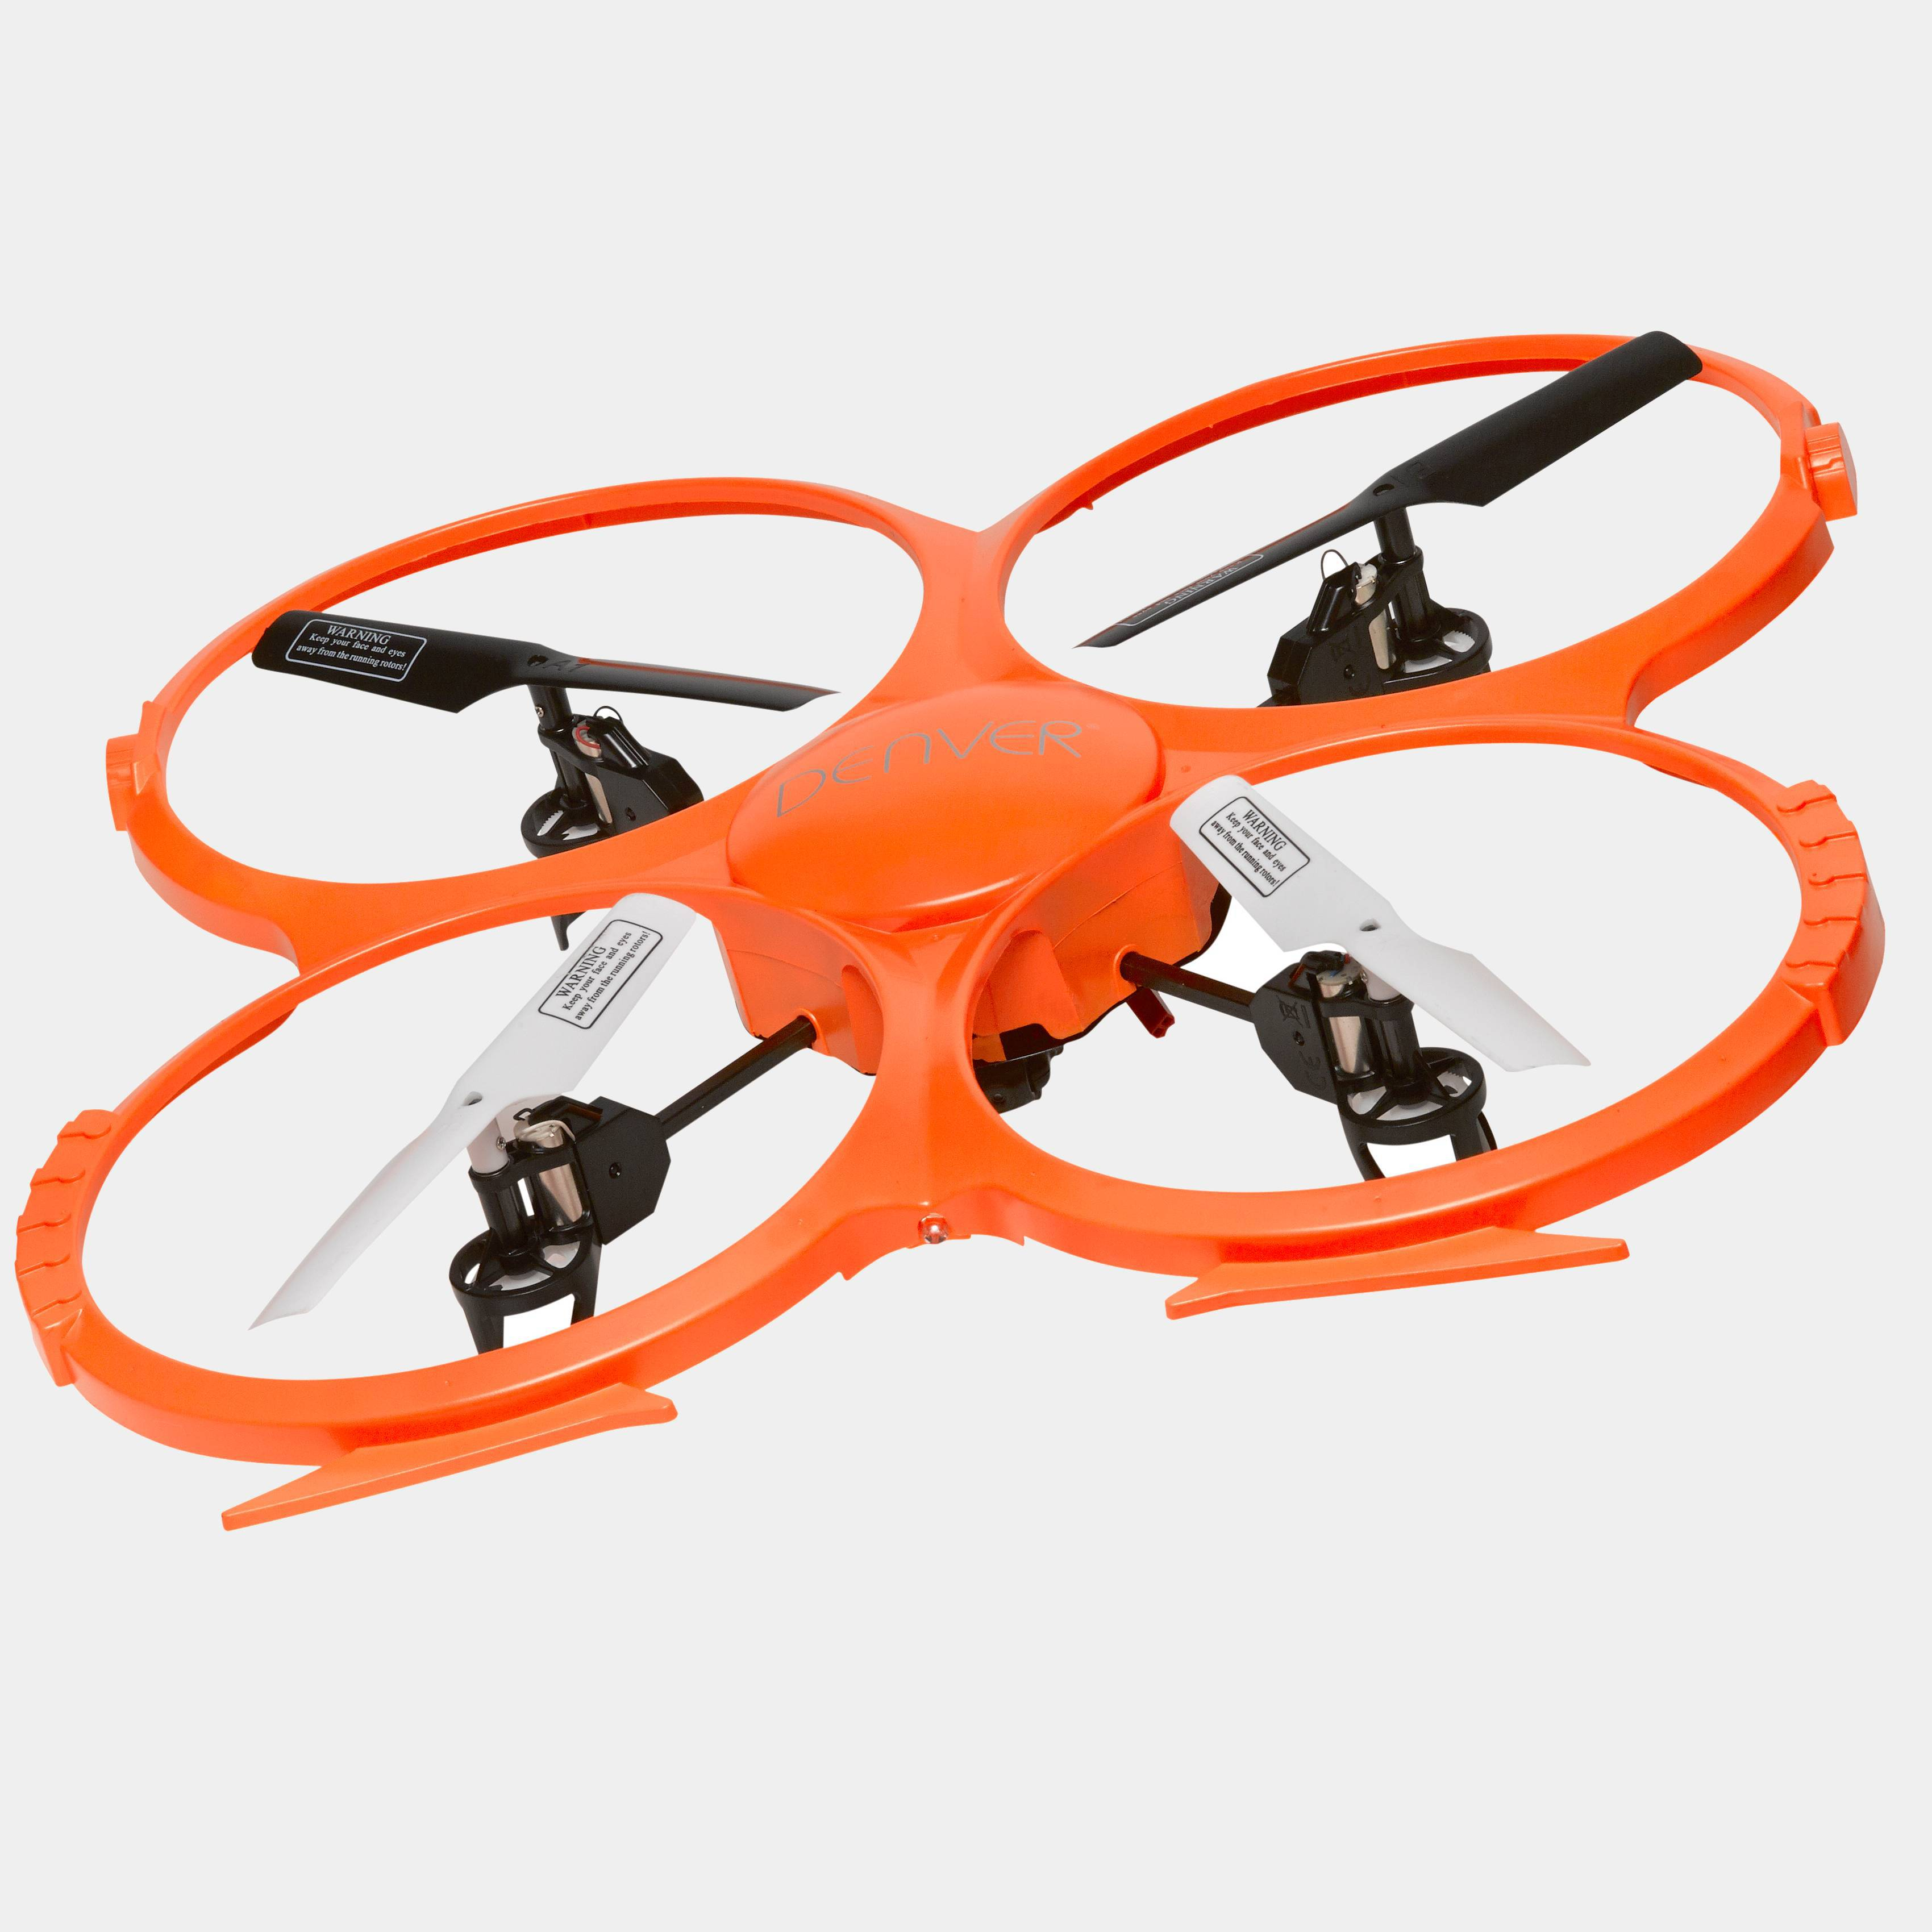 Drone Denver Dch-330 Hd Video 38 Cm